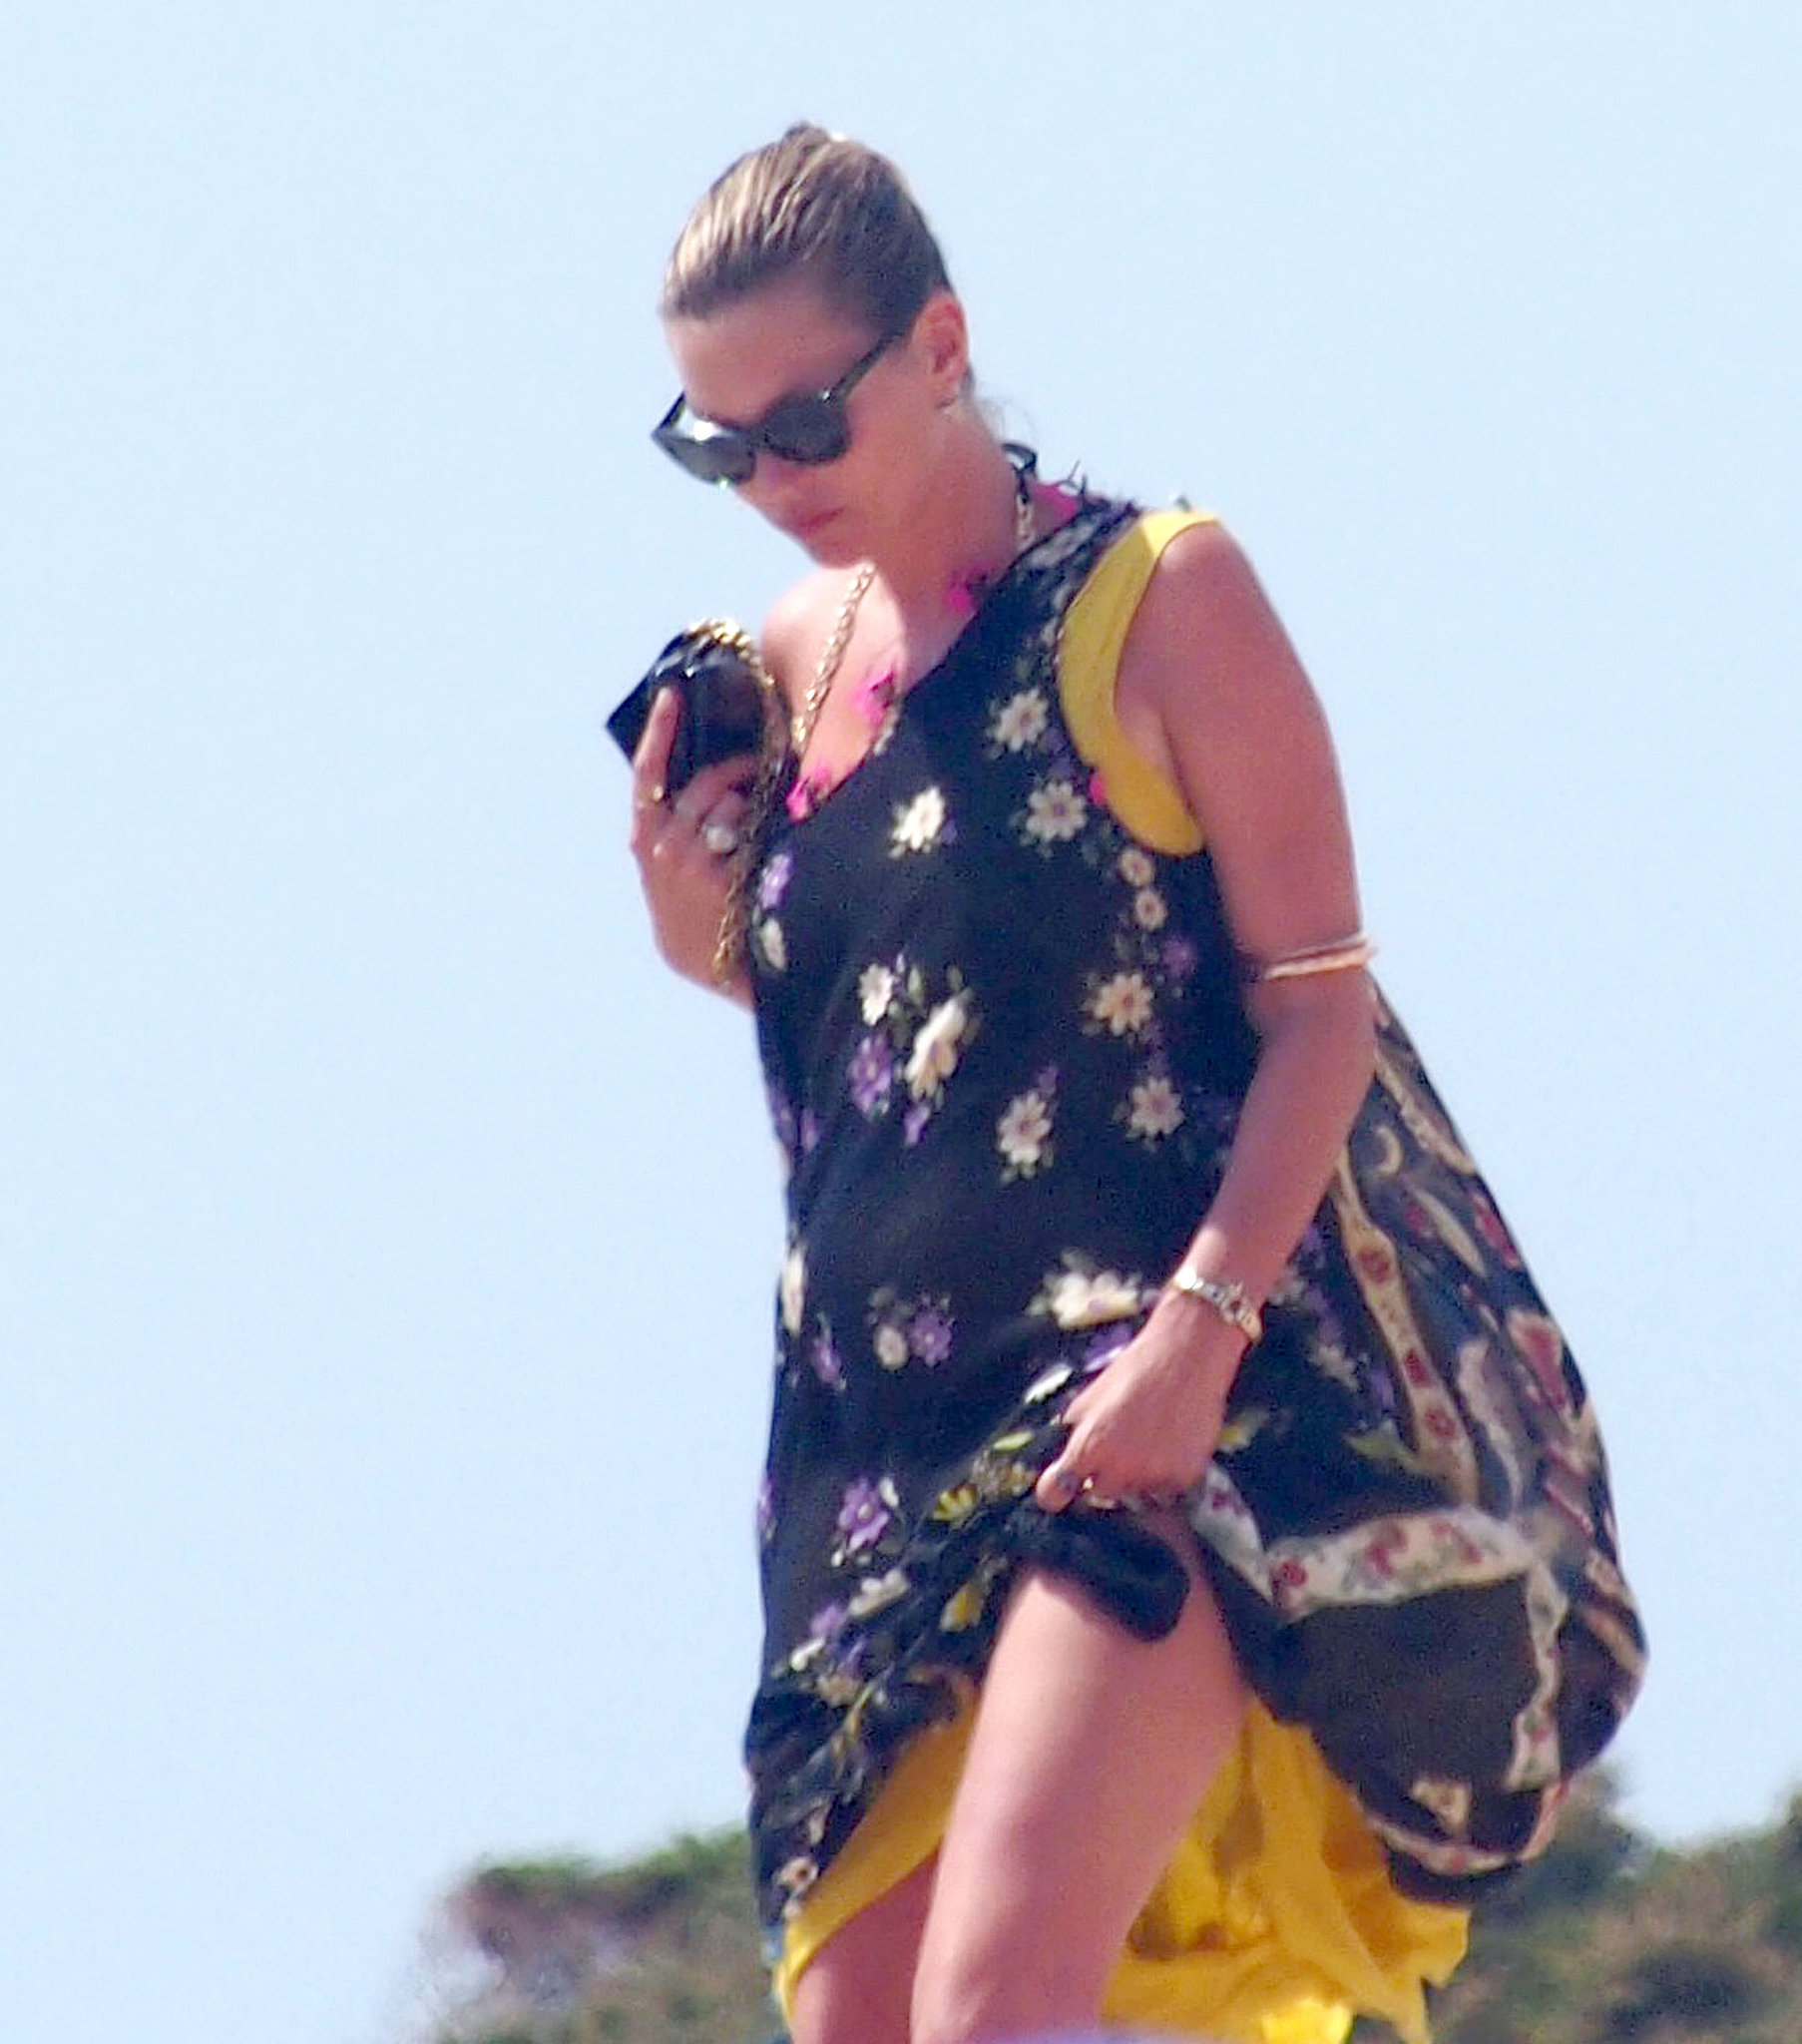 Kate Moss enjoyed a Tuesday beach day on her vacation in Spain.